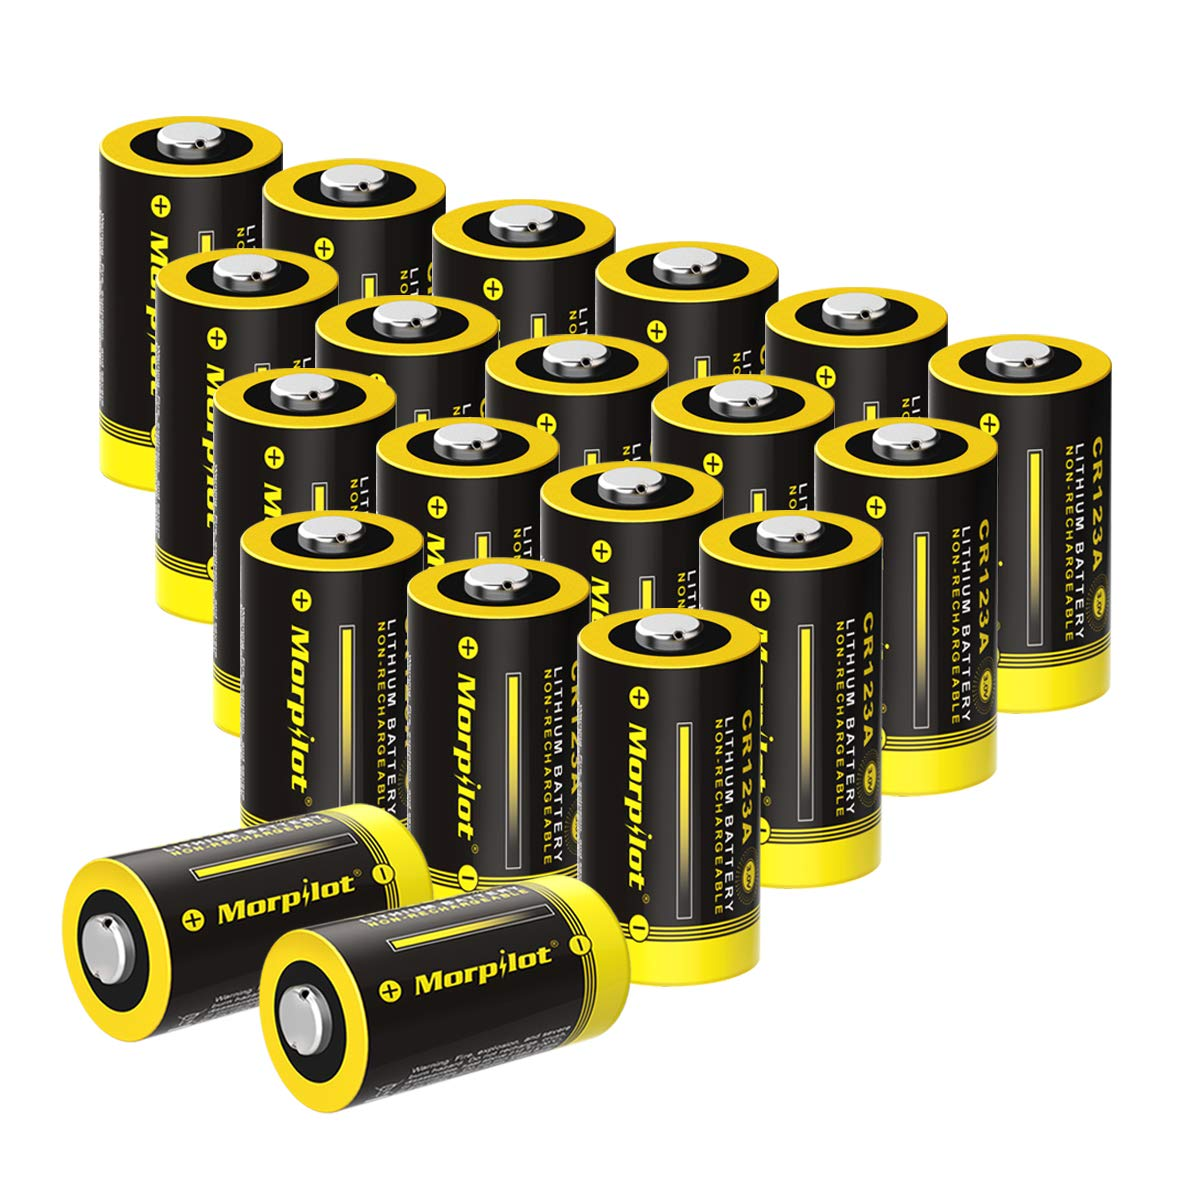 Morpilot 3V CR123A Lithium Battery, High Capacity 20 Pack 1500mAh Non-Rechargeable CR123A Batteries PTC Protected for Flashlight, Camera, Toys, Alarm System (Not Compatible with Arlo Cameras) by Keenstone